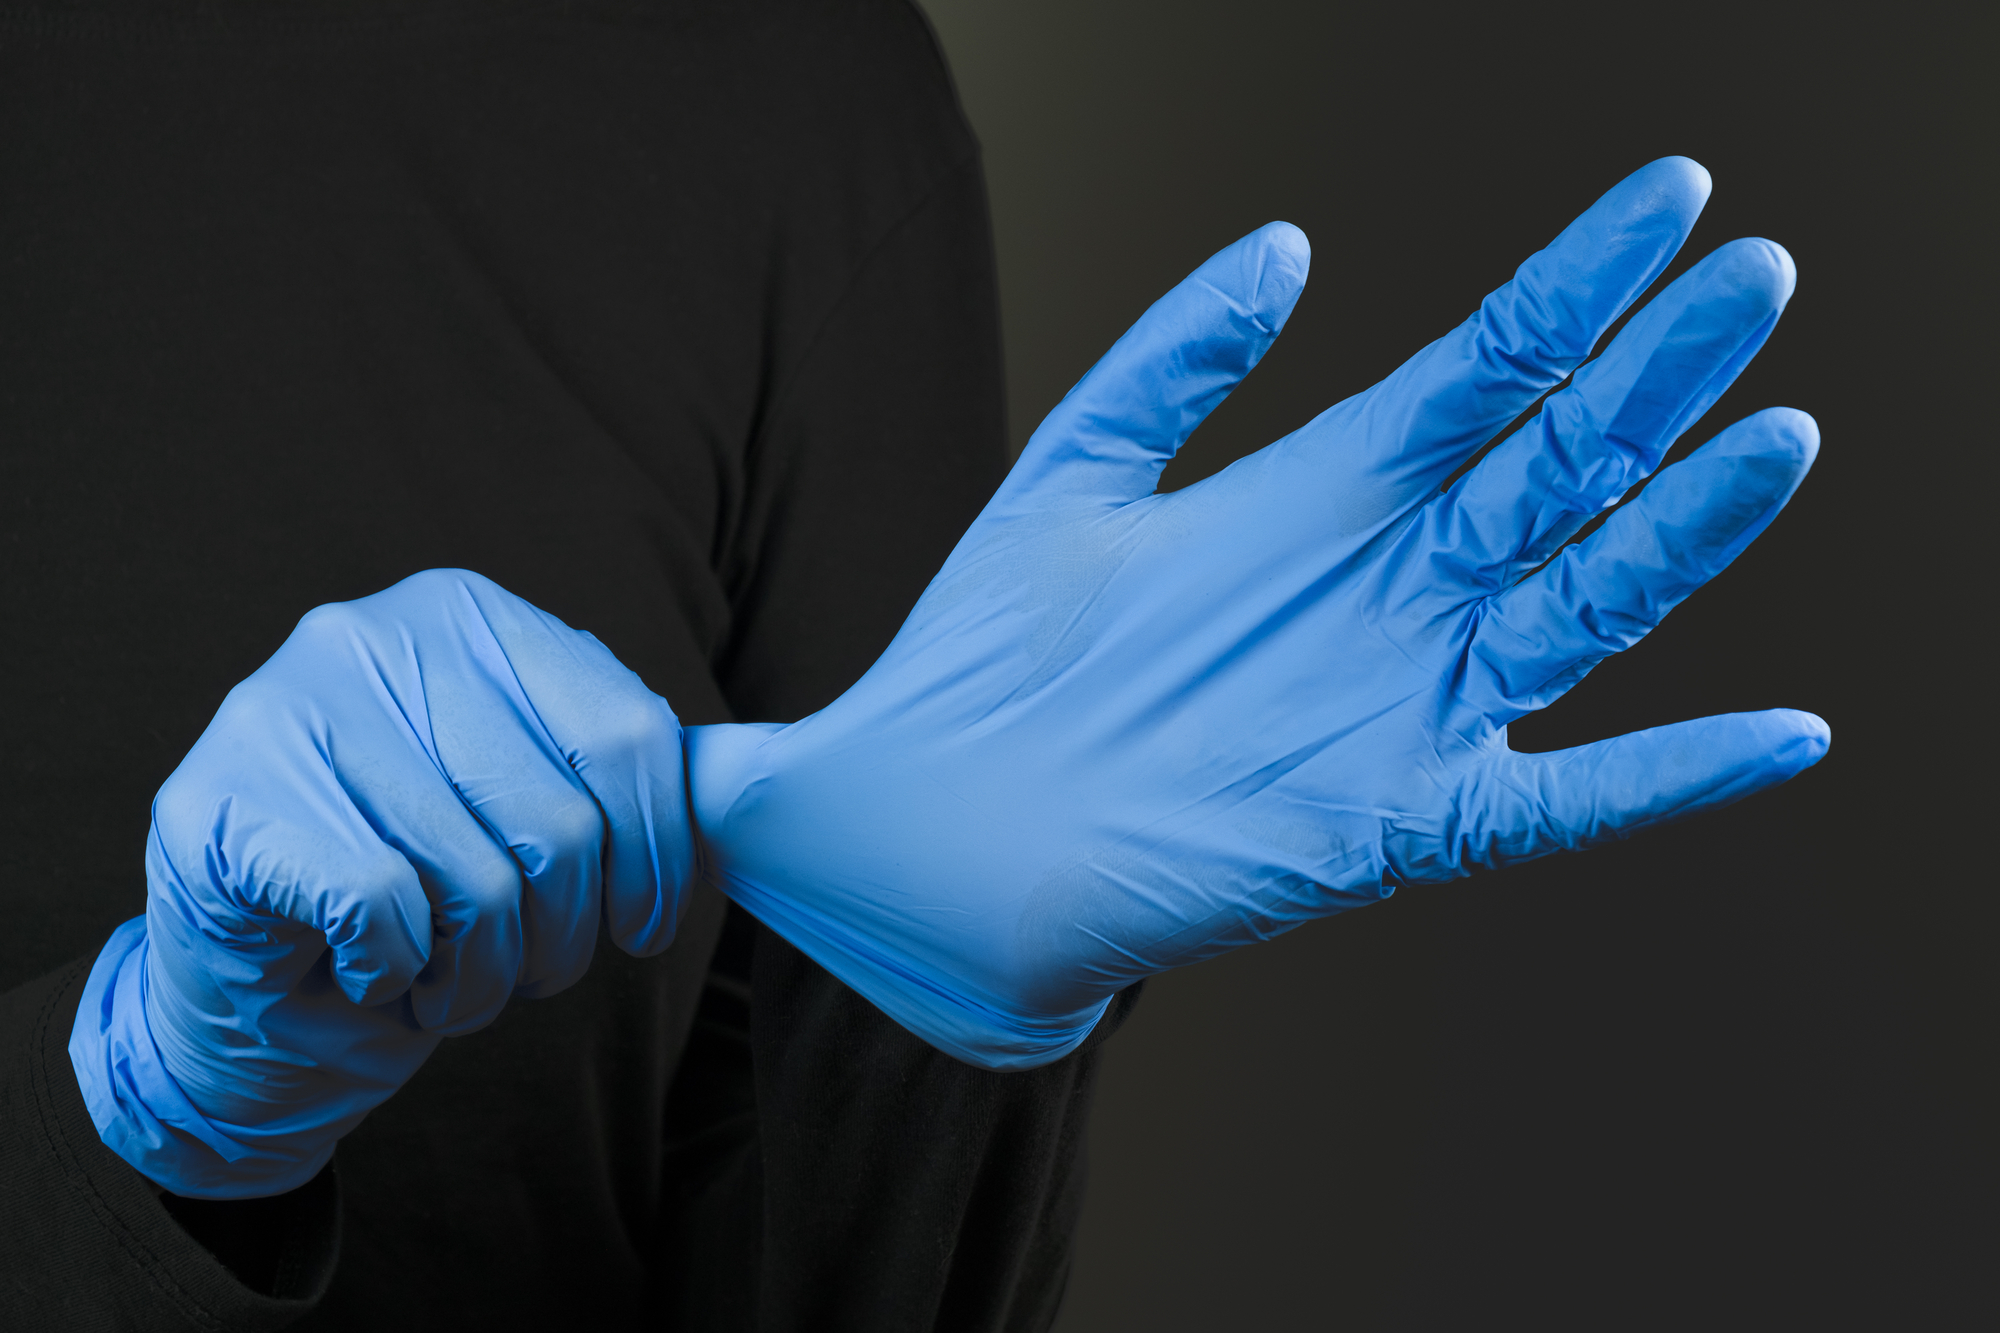 Putting on blue rubber hand gloves. Wearing protective hand gear against the infection or virus spread.